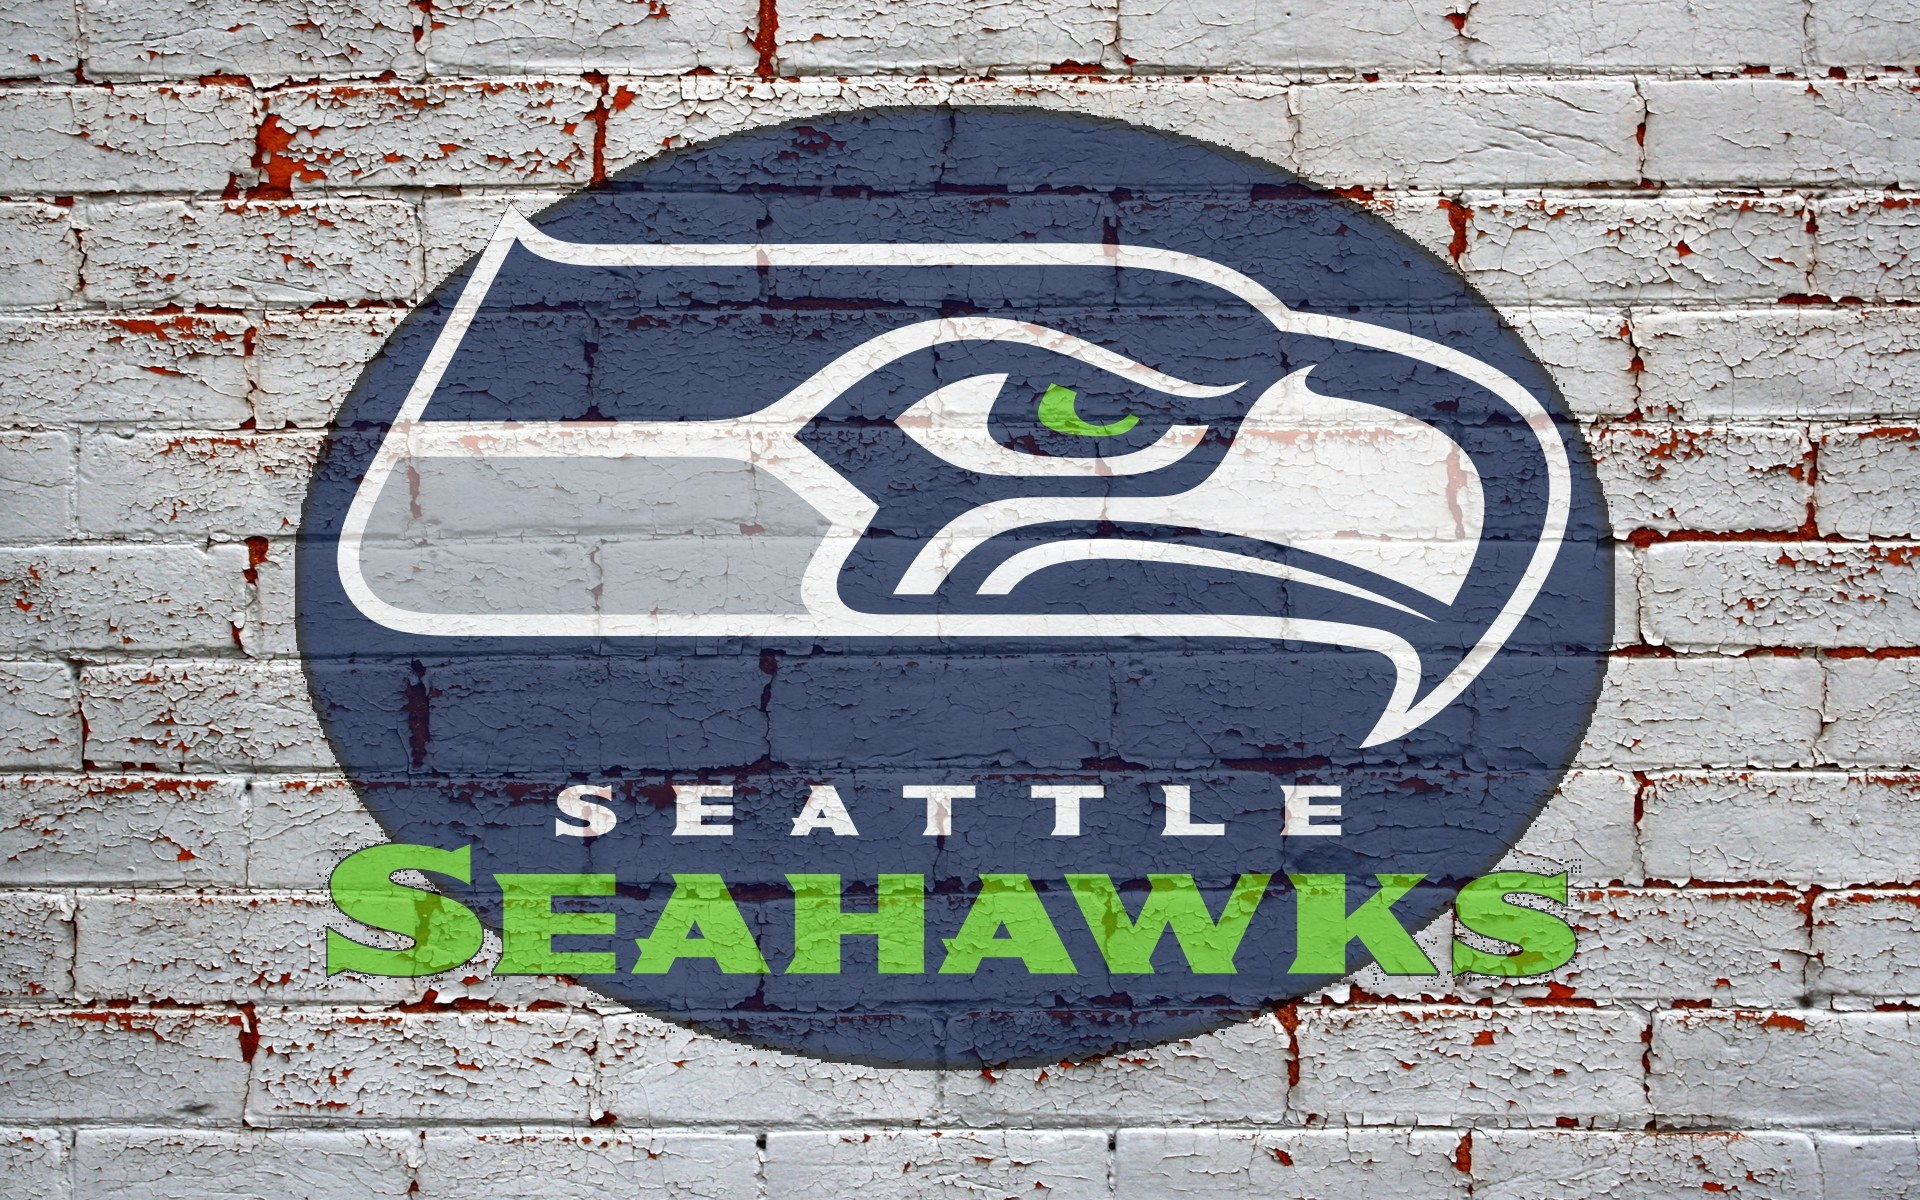 Seattle seahawks desktop wallpaper 55977 1920x1200 px seattle seahawks desktop wallpaper 55977 voltagebd Image collections